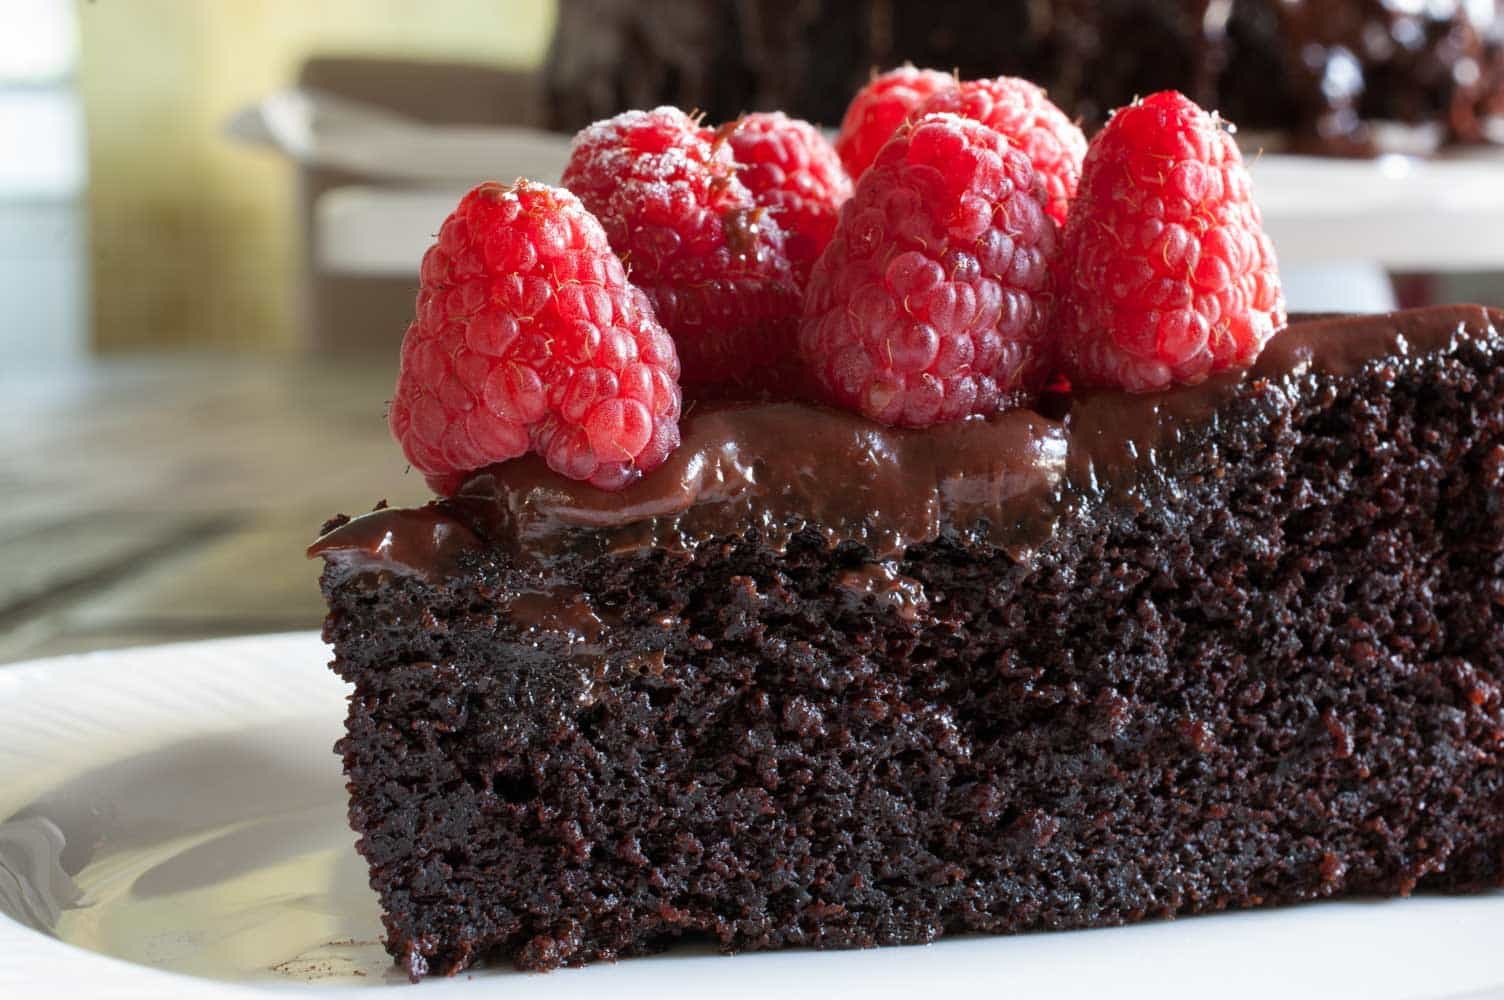 Ina Garten's Chocolate Cake without Butter